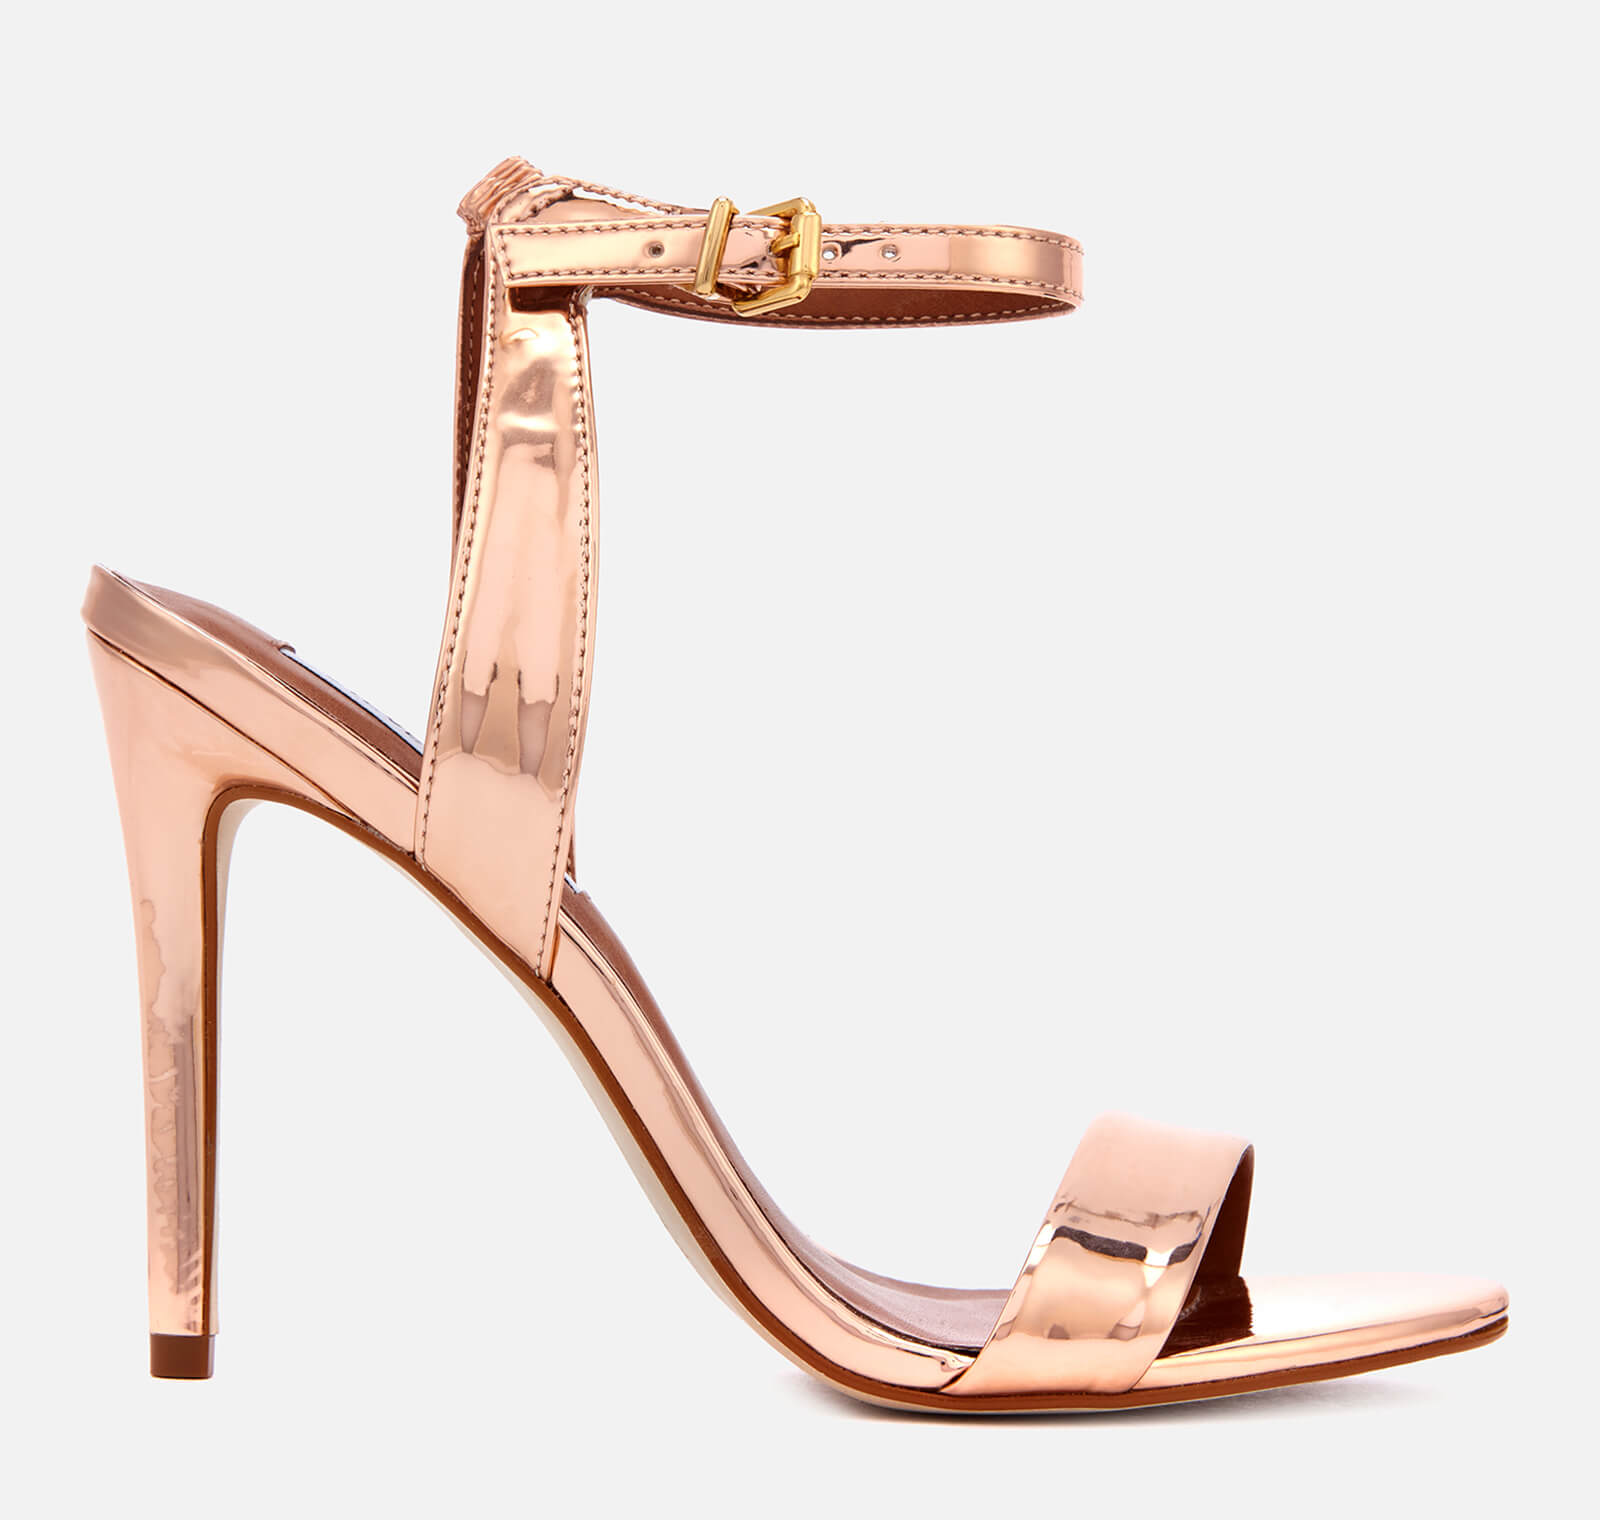 a535001119db Steve Madden Women s Landen Barely There Heeled Sandals - Rose Gold Womens  Footwear